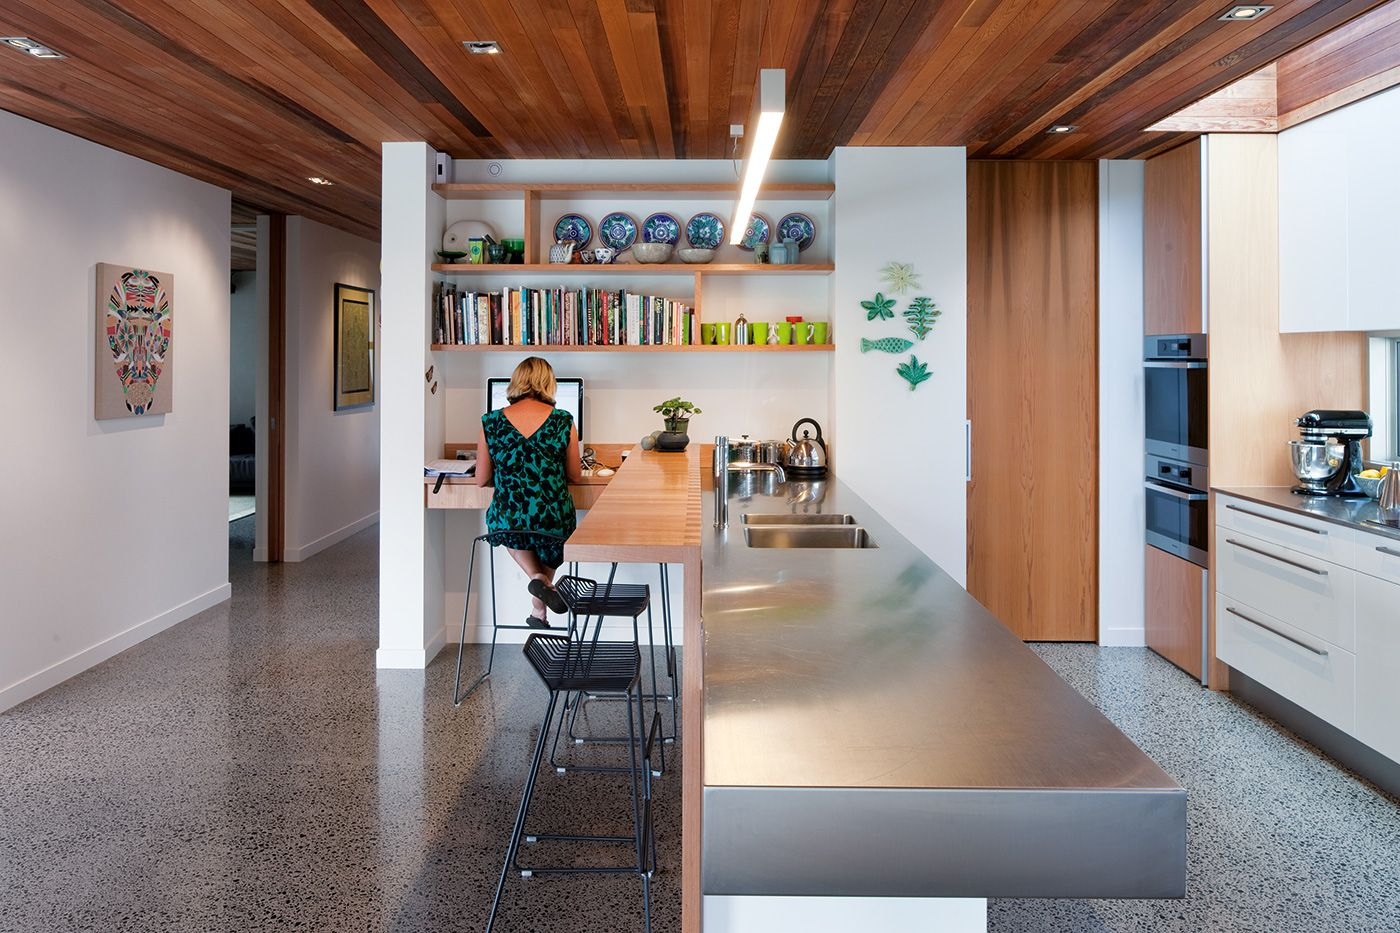 Kitchens: 4 ingenious spaces where cooking rules - Homes To Love